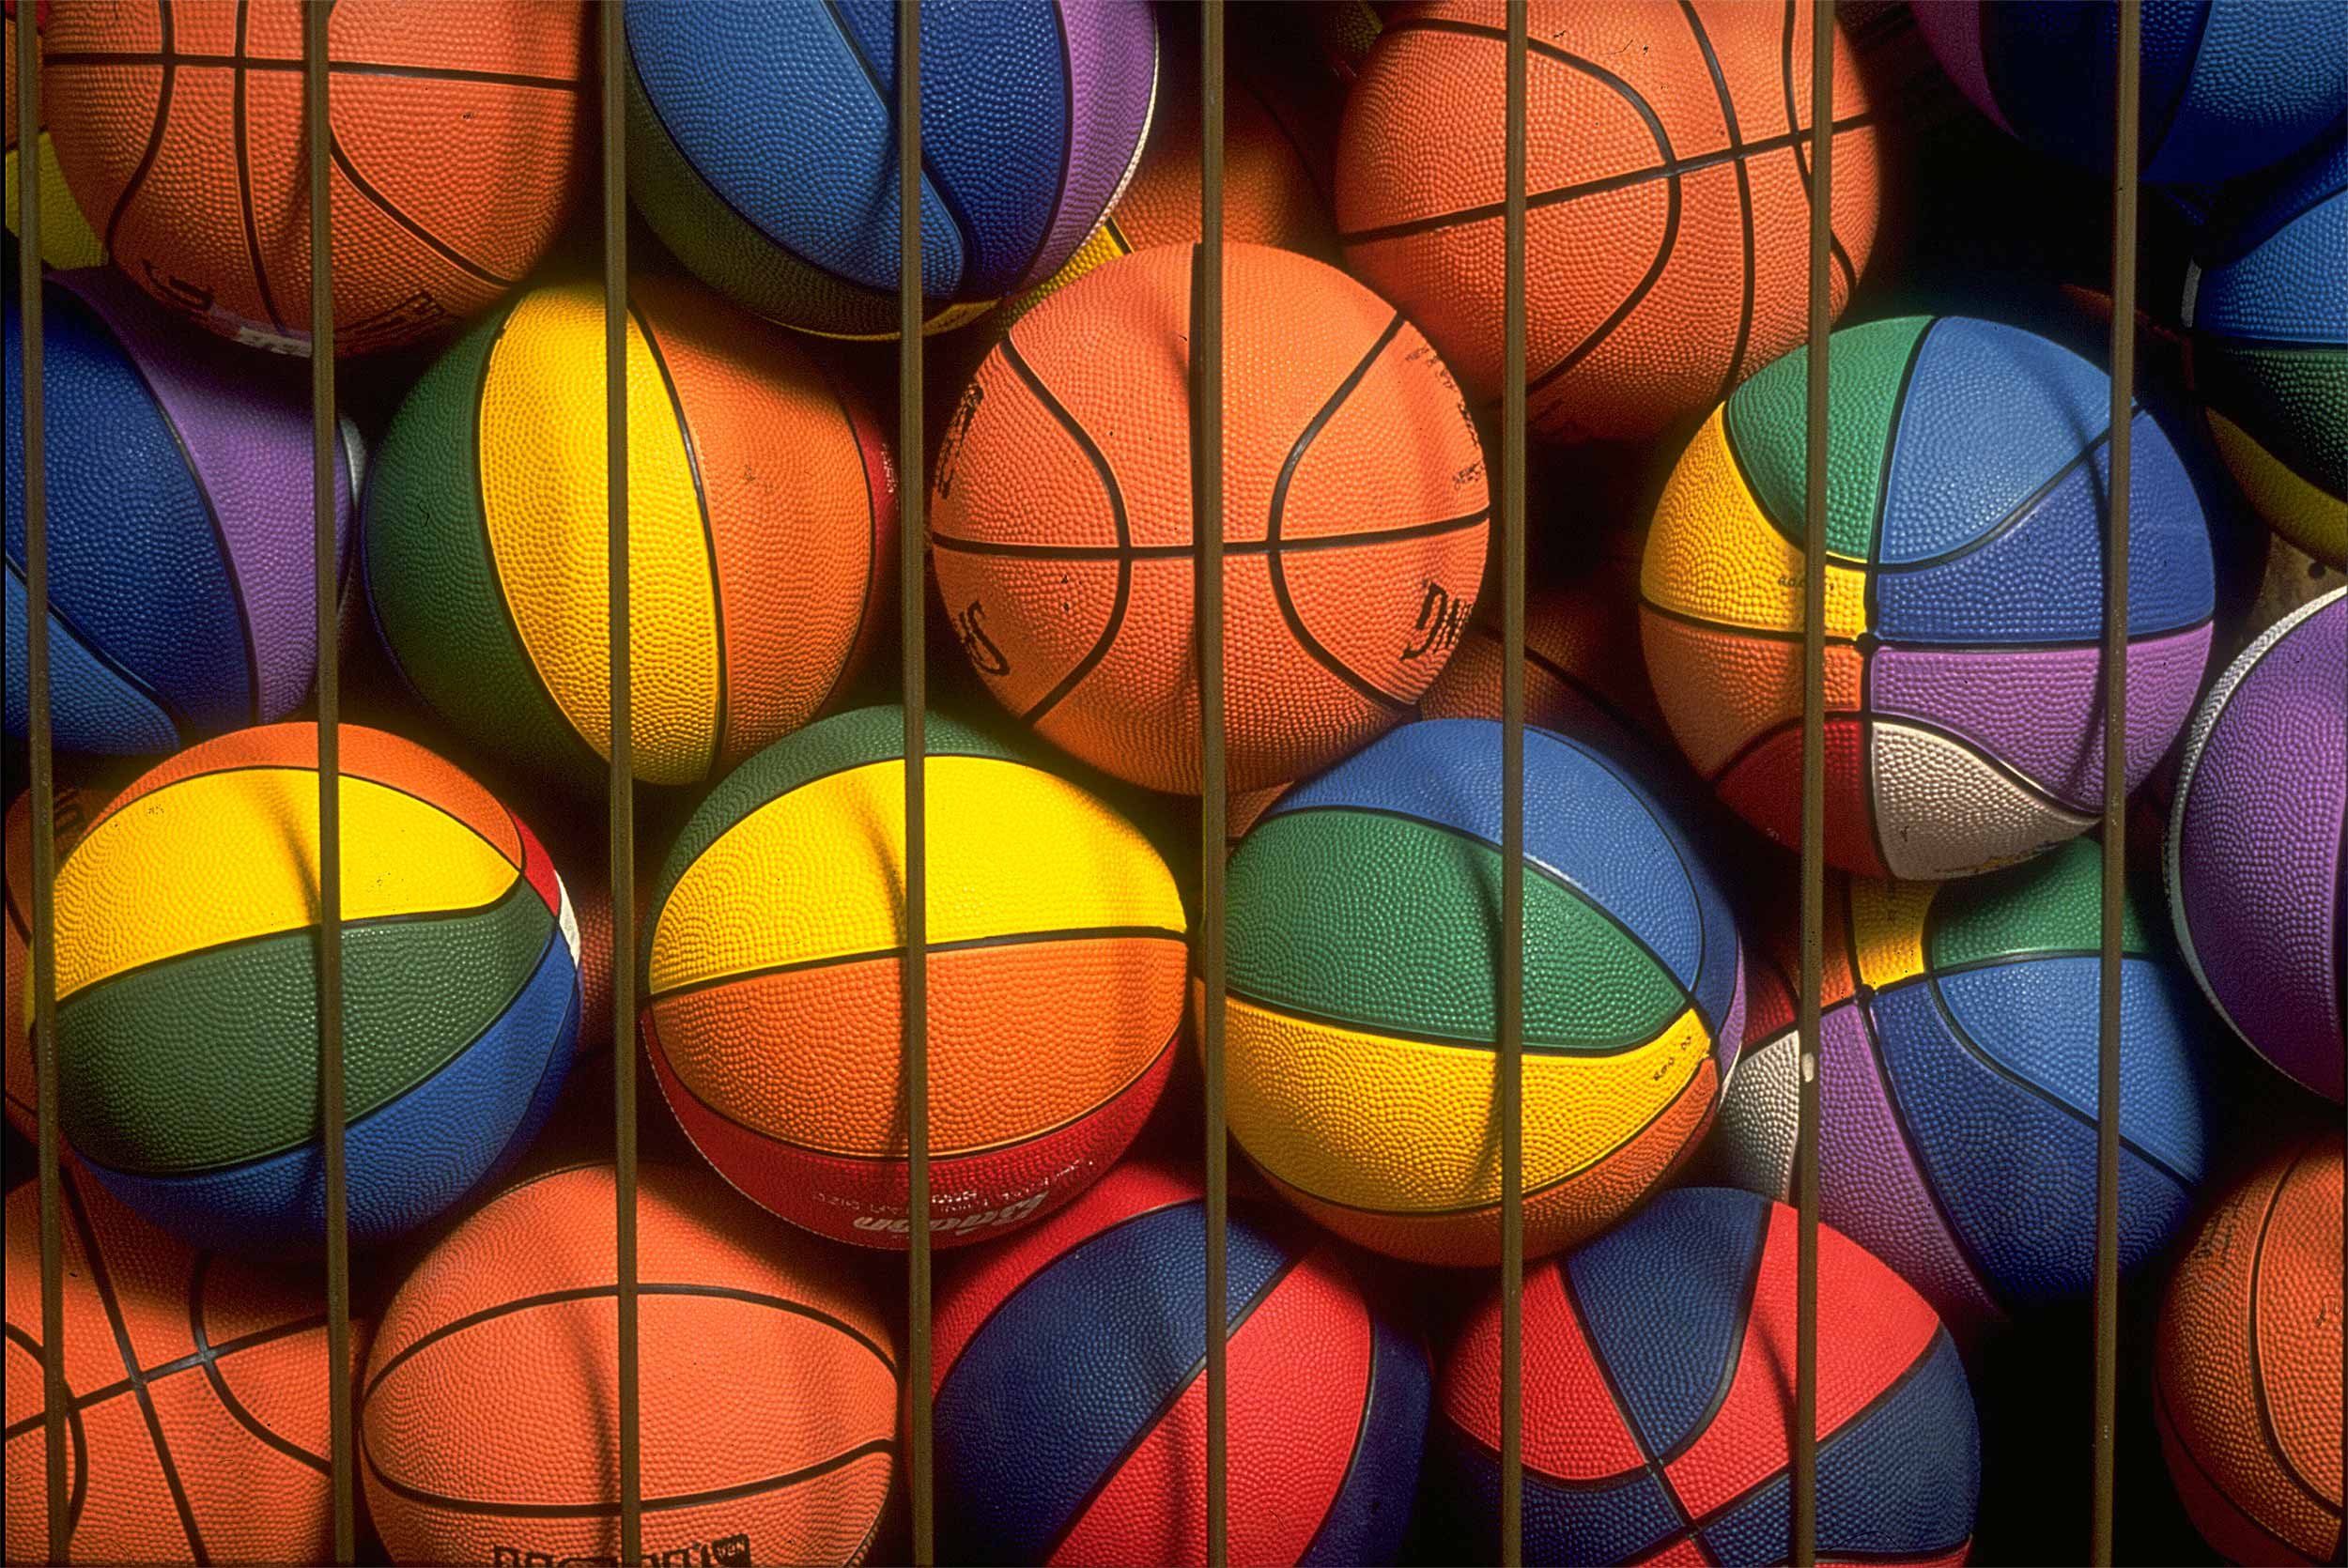 basketball-behind-bars-colorful.jpg